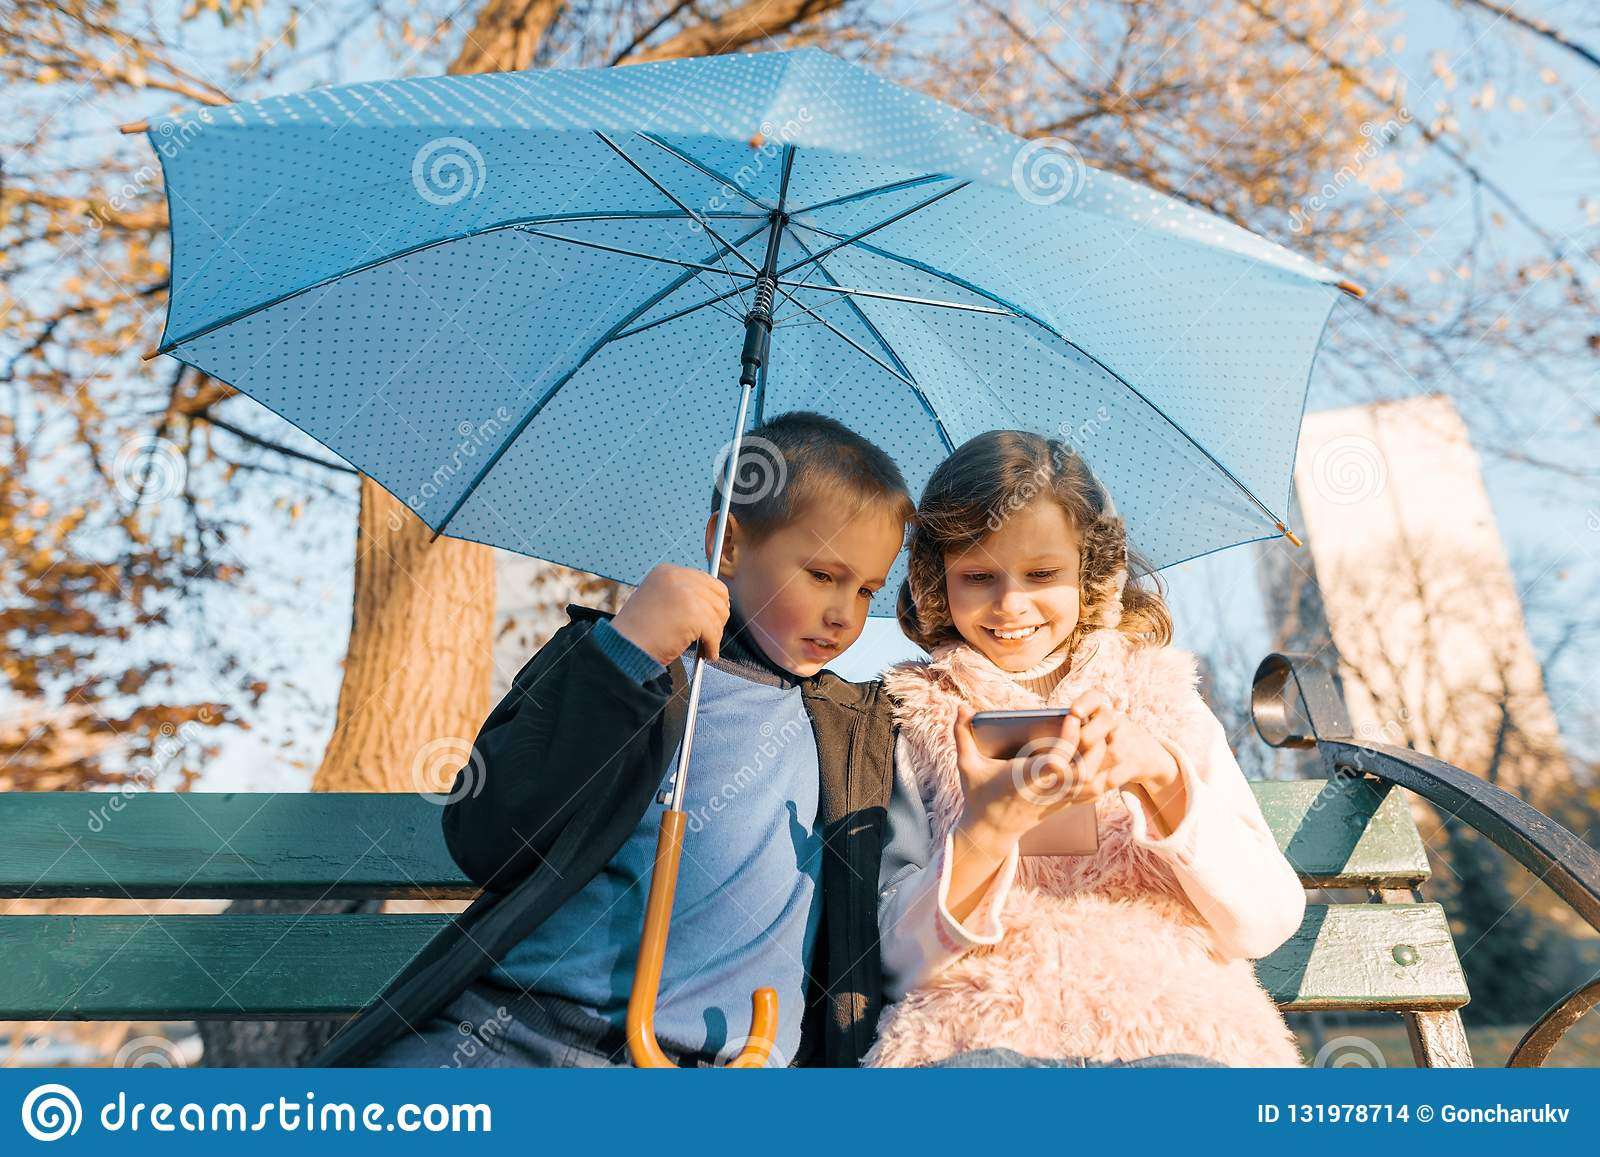 Outdoor portrait of two smiling children of boy and girl, sitting under an umbrella on bench in the park, looking at smartphone,